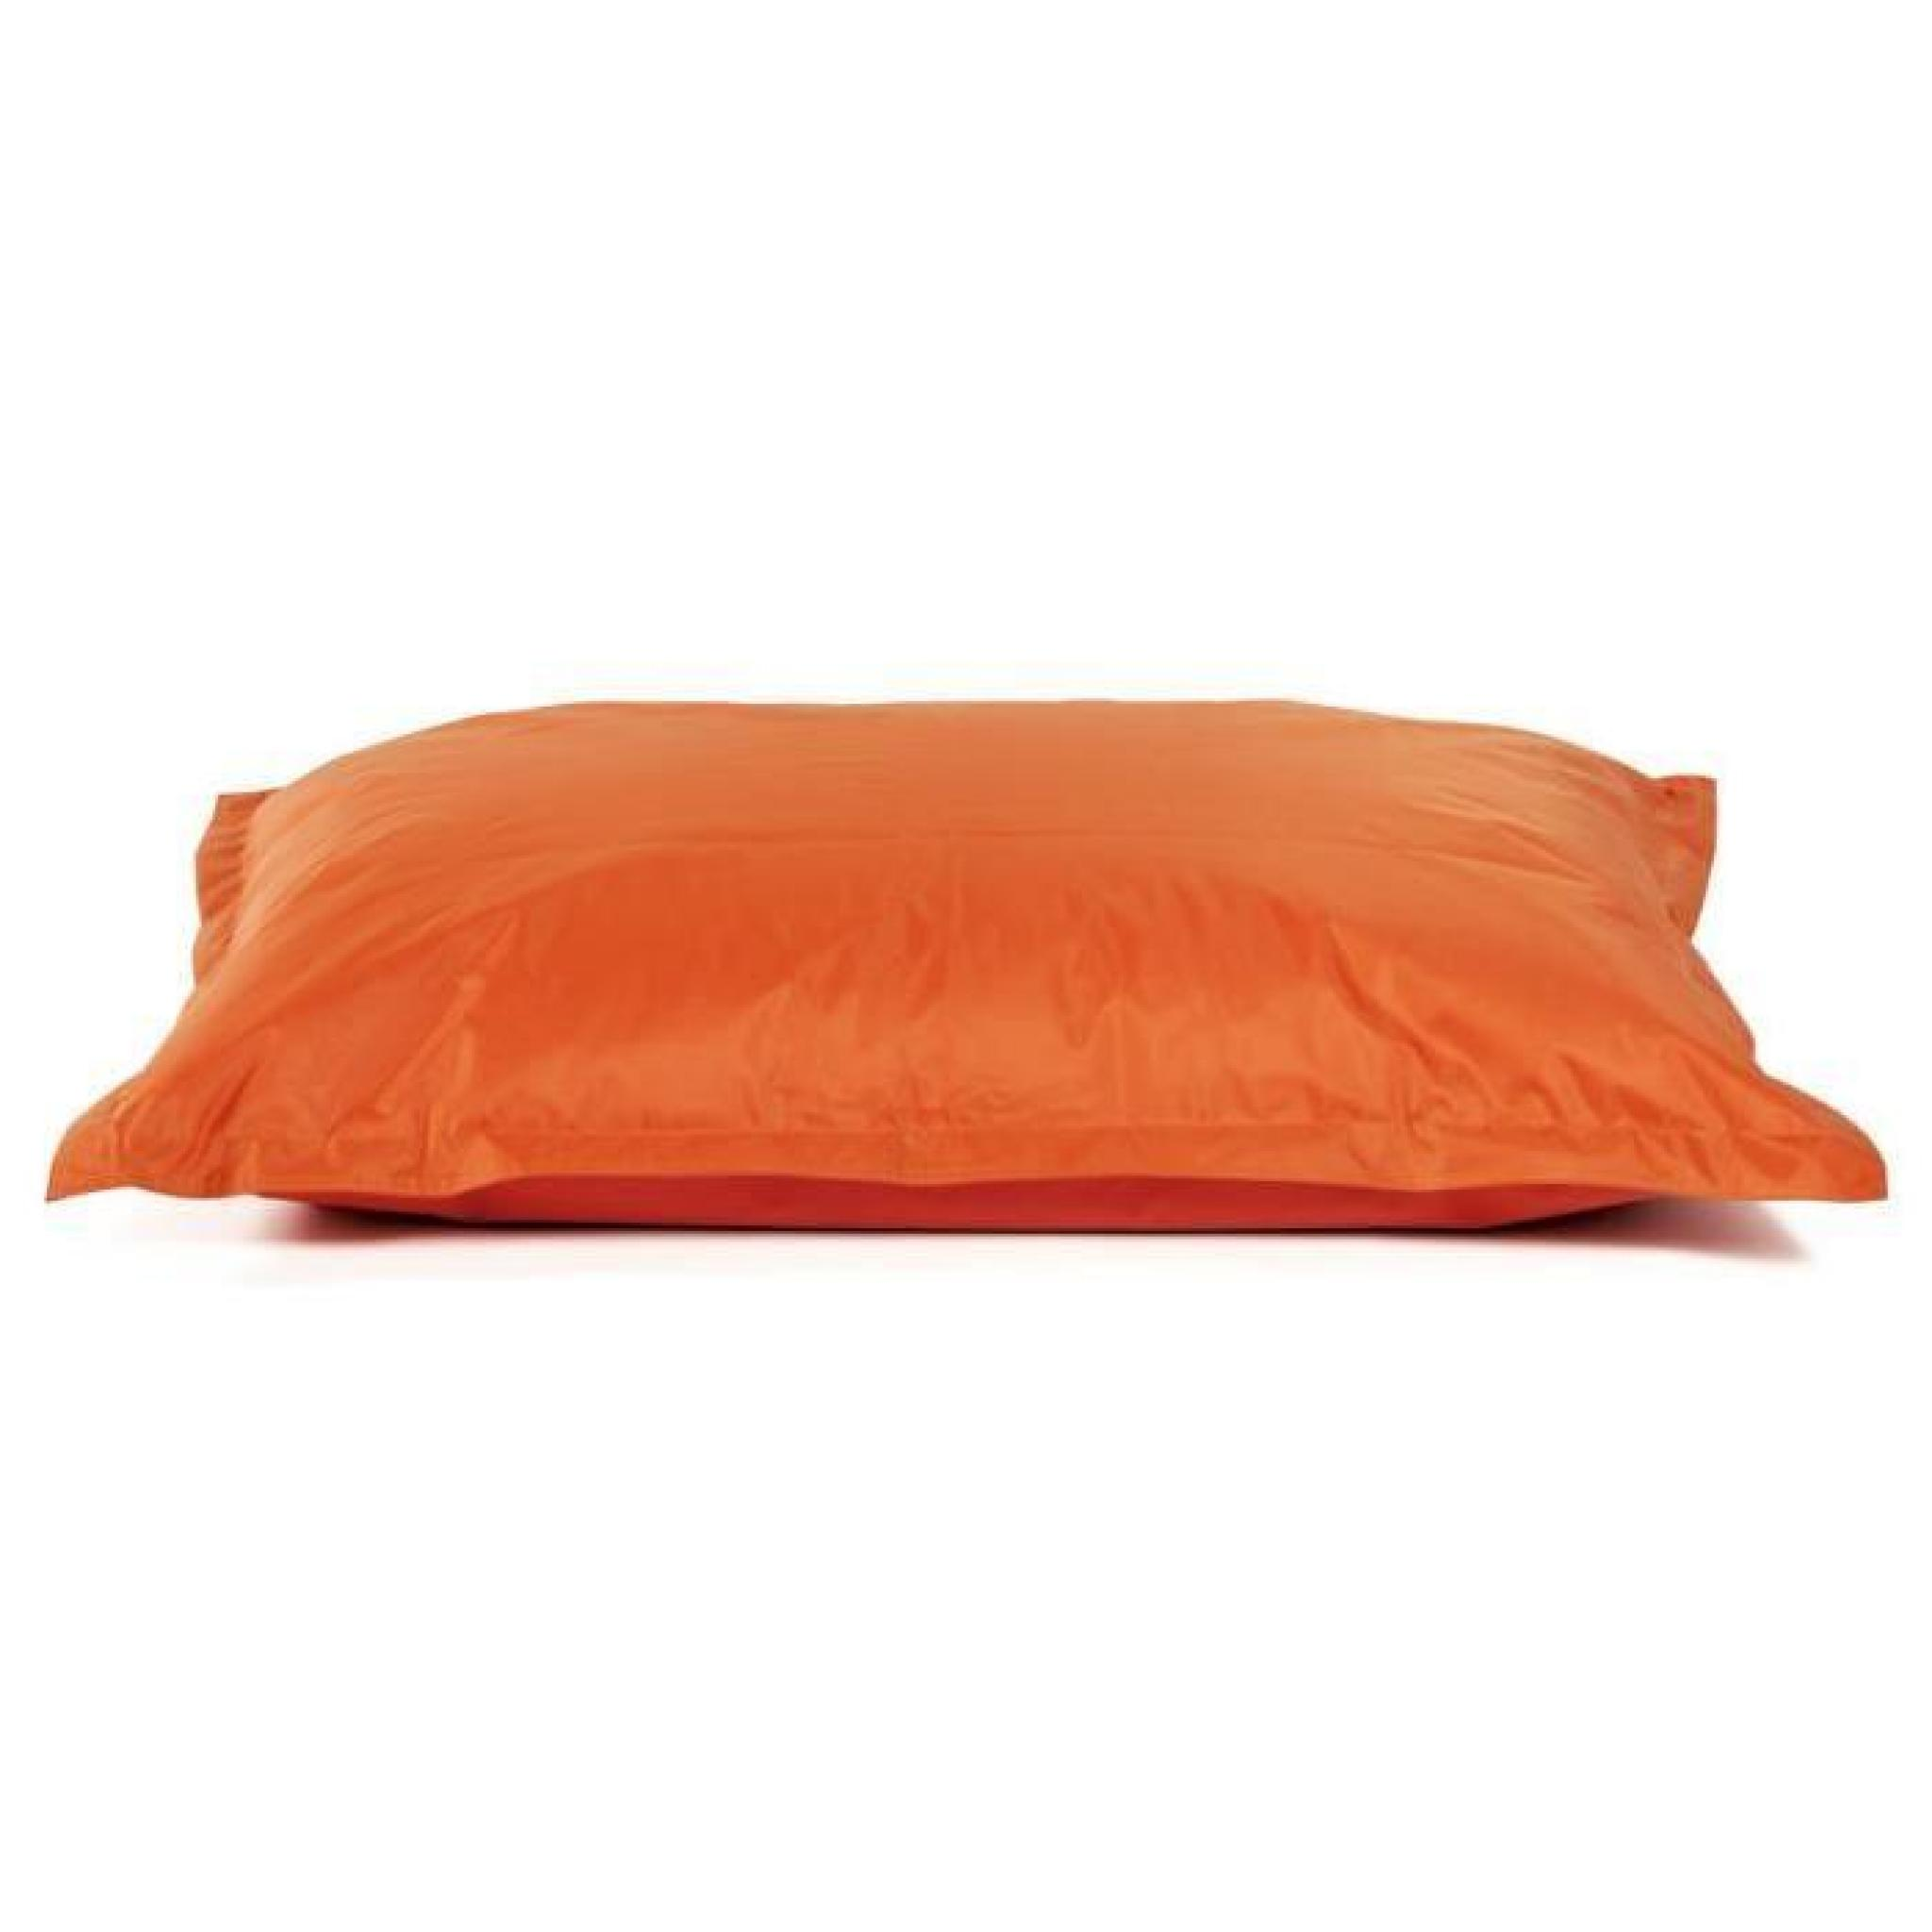 Pouf Exterieur Fuschia Pouf Design En Textile De Couleur Orange Ls00530or